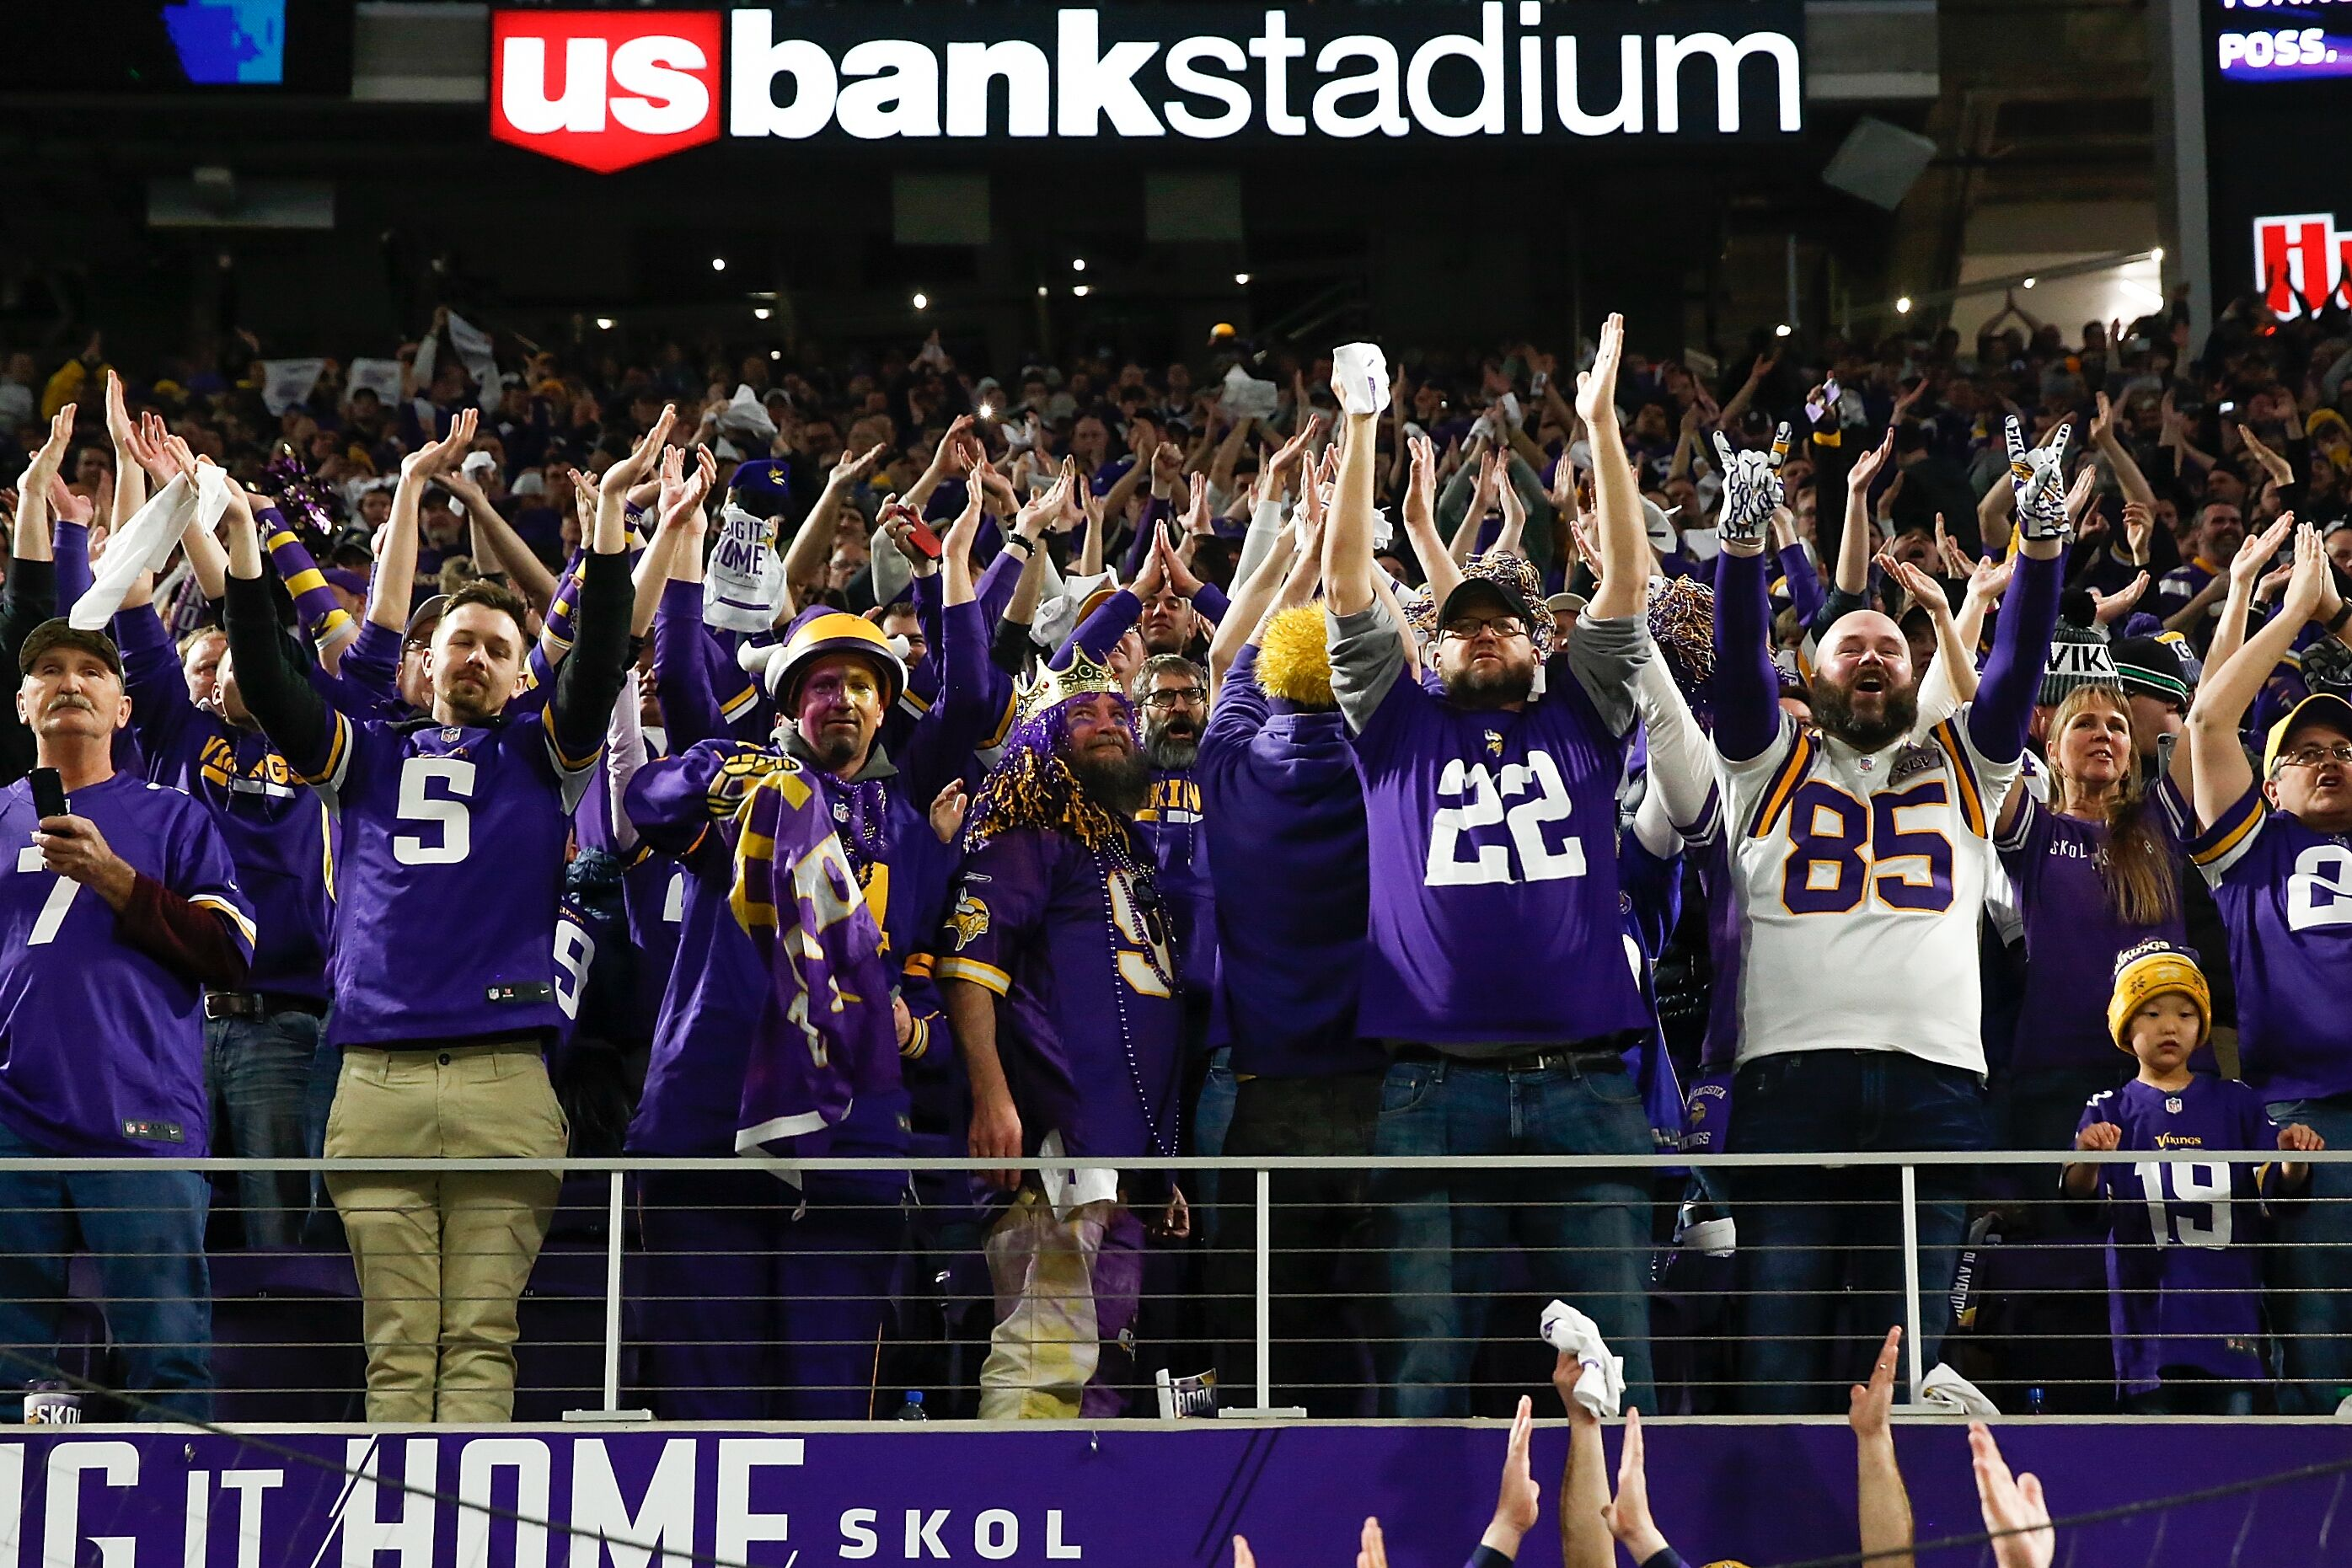 904974222-divisional-round-new-orleans-saints-v-minnesota-vikings.jpg